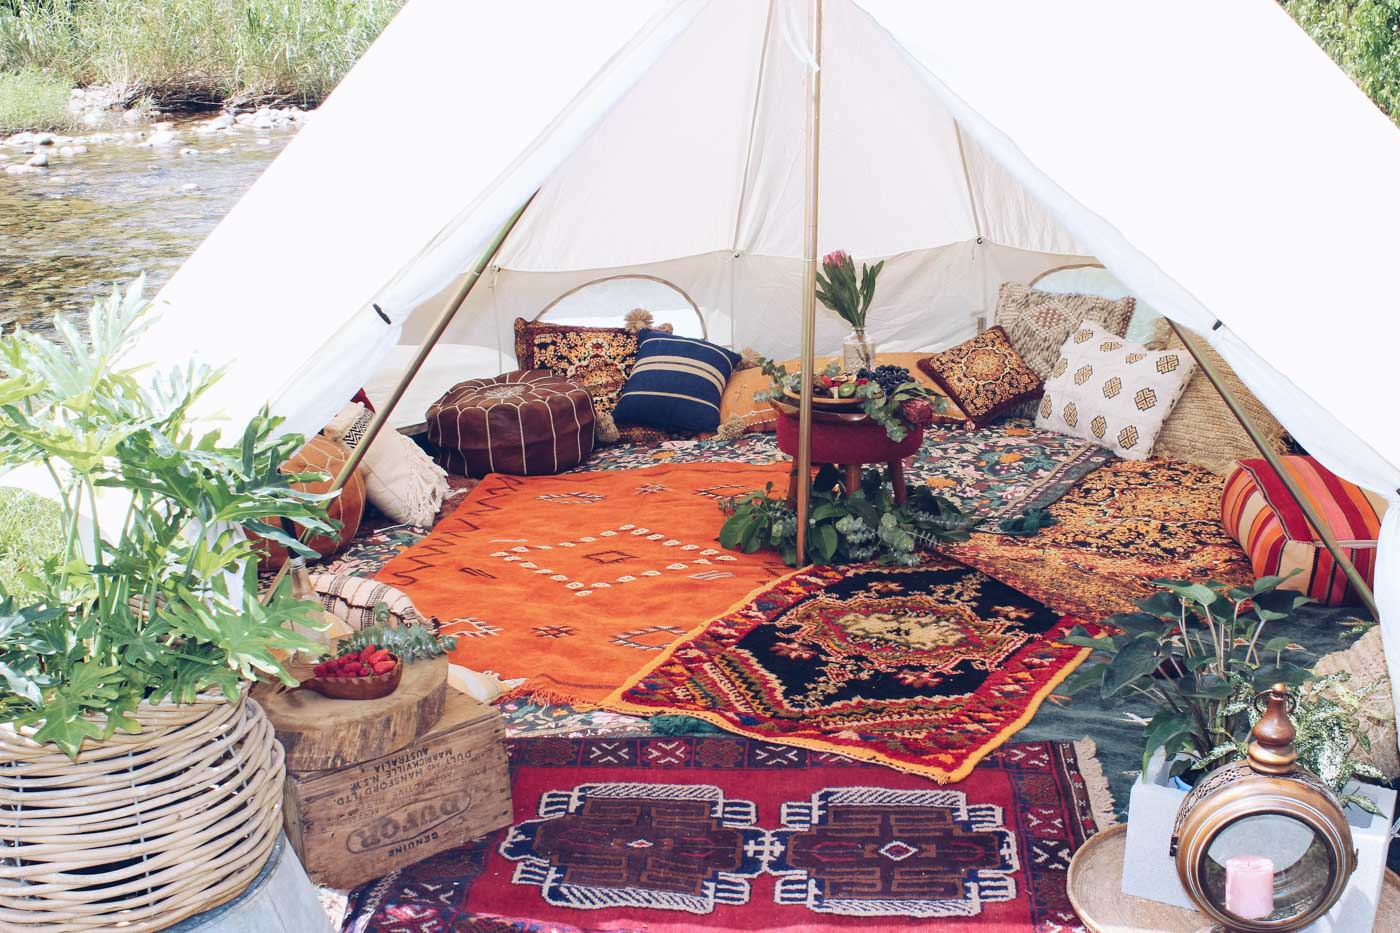 the_Collection_co_grazing_table_cairns_weddings_catering_grazing_platter_hire_pop_up_picnic_bell_tent_event_hire_styling-39-2.jpg